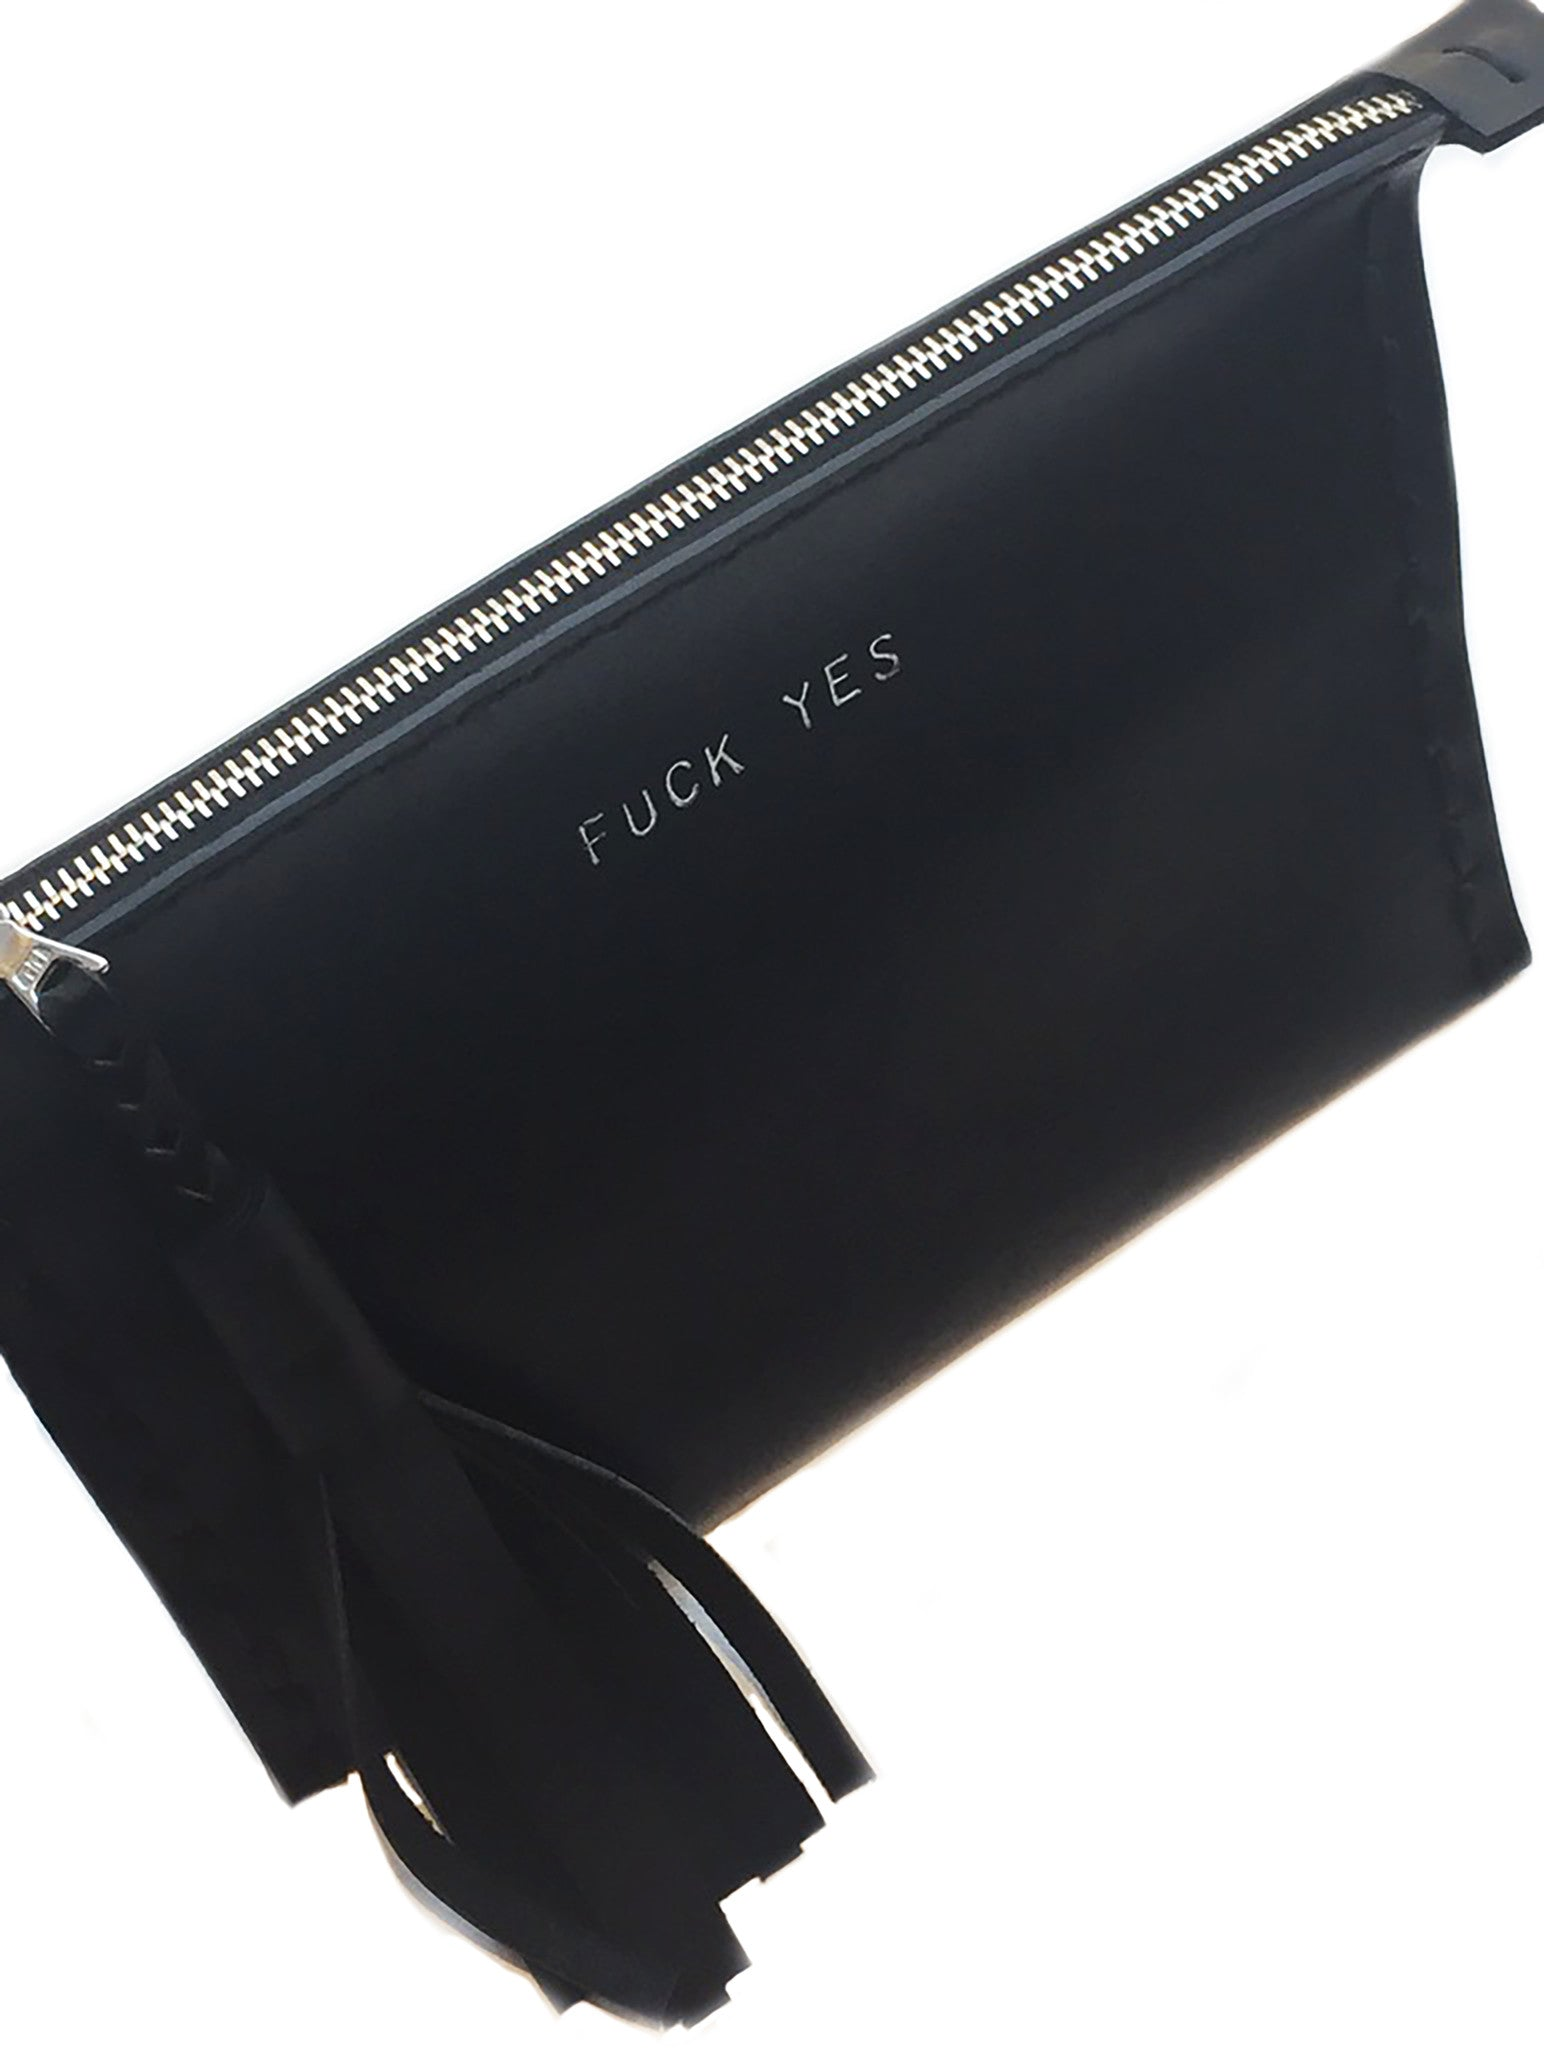 Embossed FUCK YES Laced Leather Clutch Pouch Wendy Nichol Luxury Handbags Bag Purse Designer Handmade in NYC New York City Zip Zipper Pouch Wallet Fringe Tassel Embossed Gold Silver Foil Fuck No Fuck Off Fuck You Small Medium Large Size Smooth High Quality Black Leather